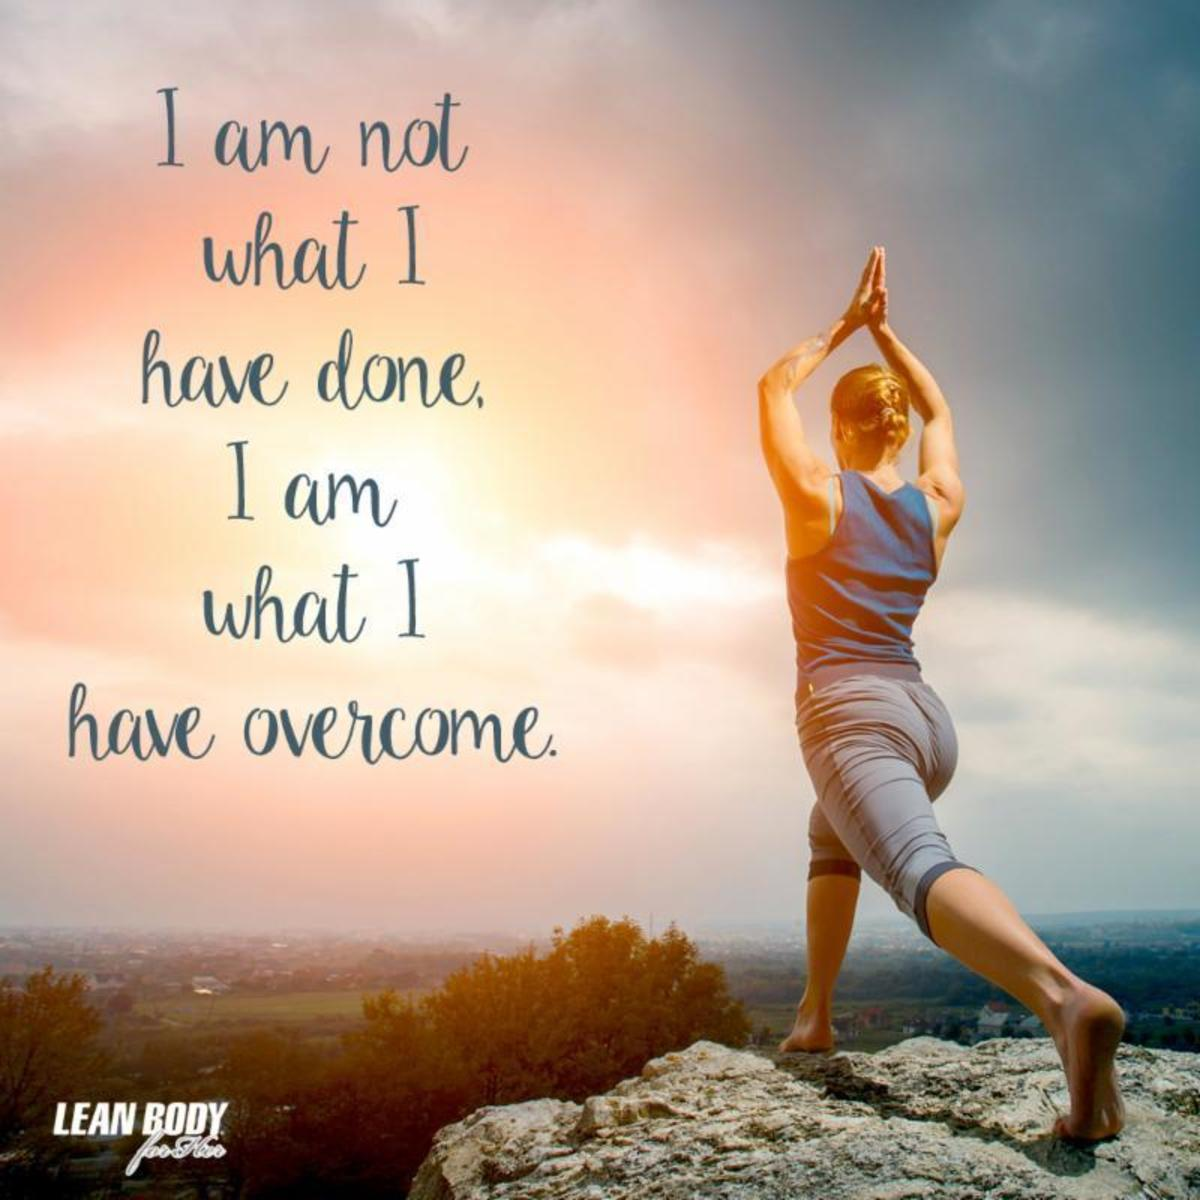 Who I Am: I Am Not What I Have Done, I Am What I Have Overcome